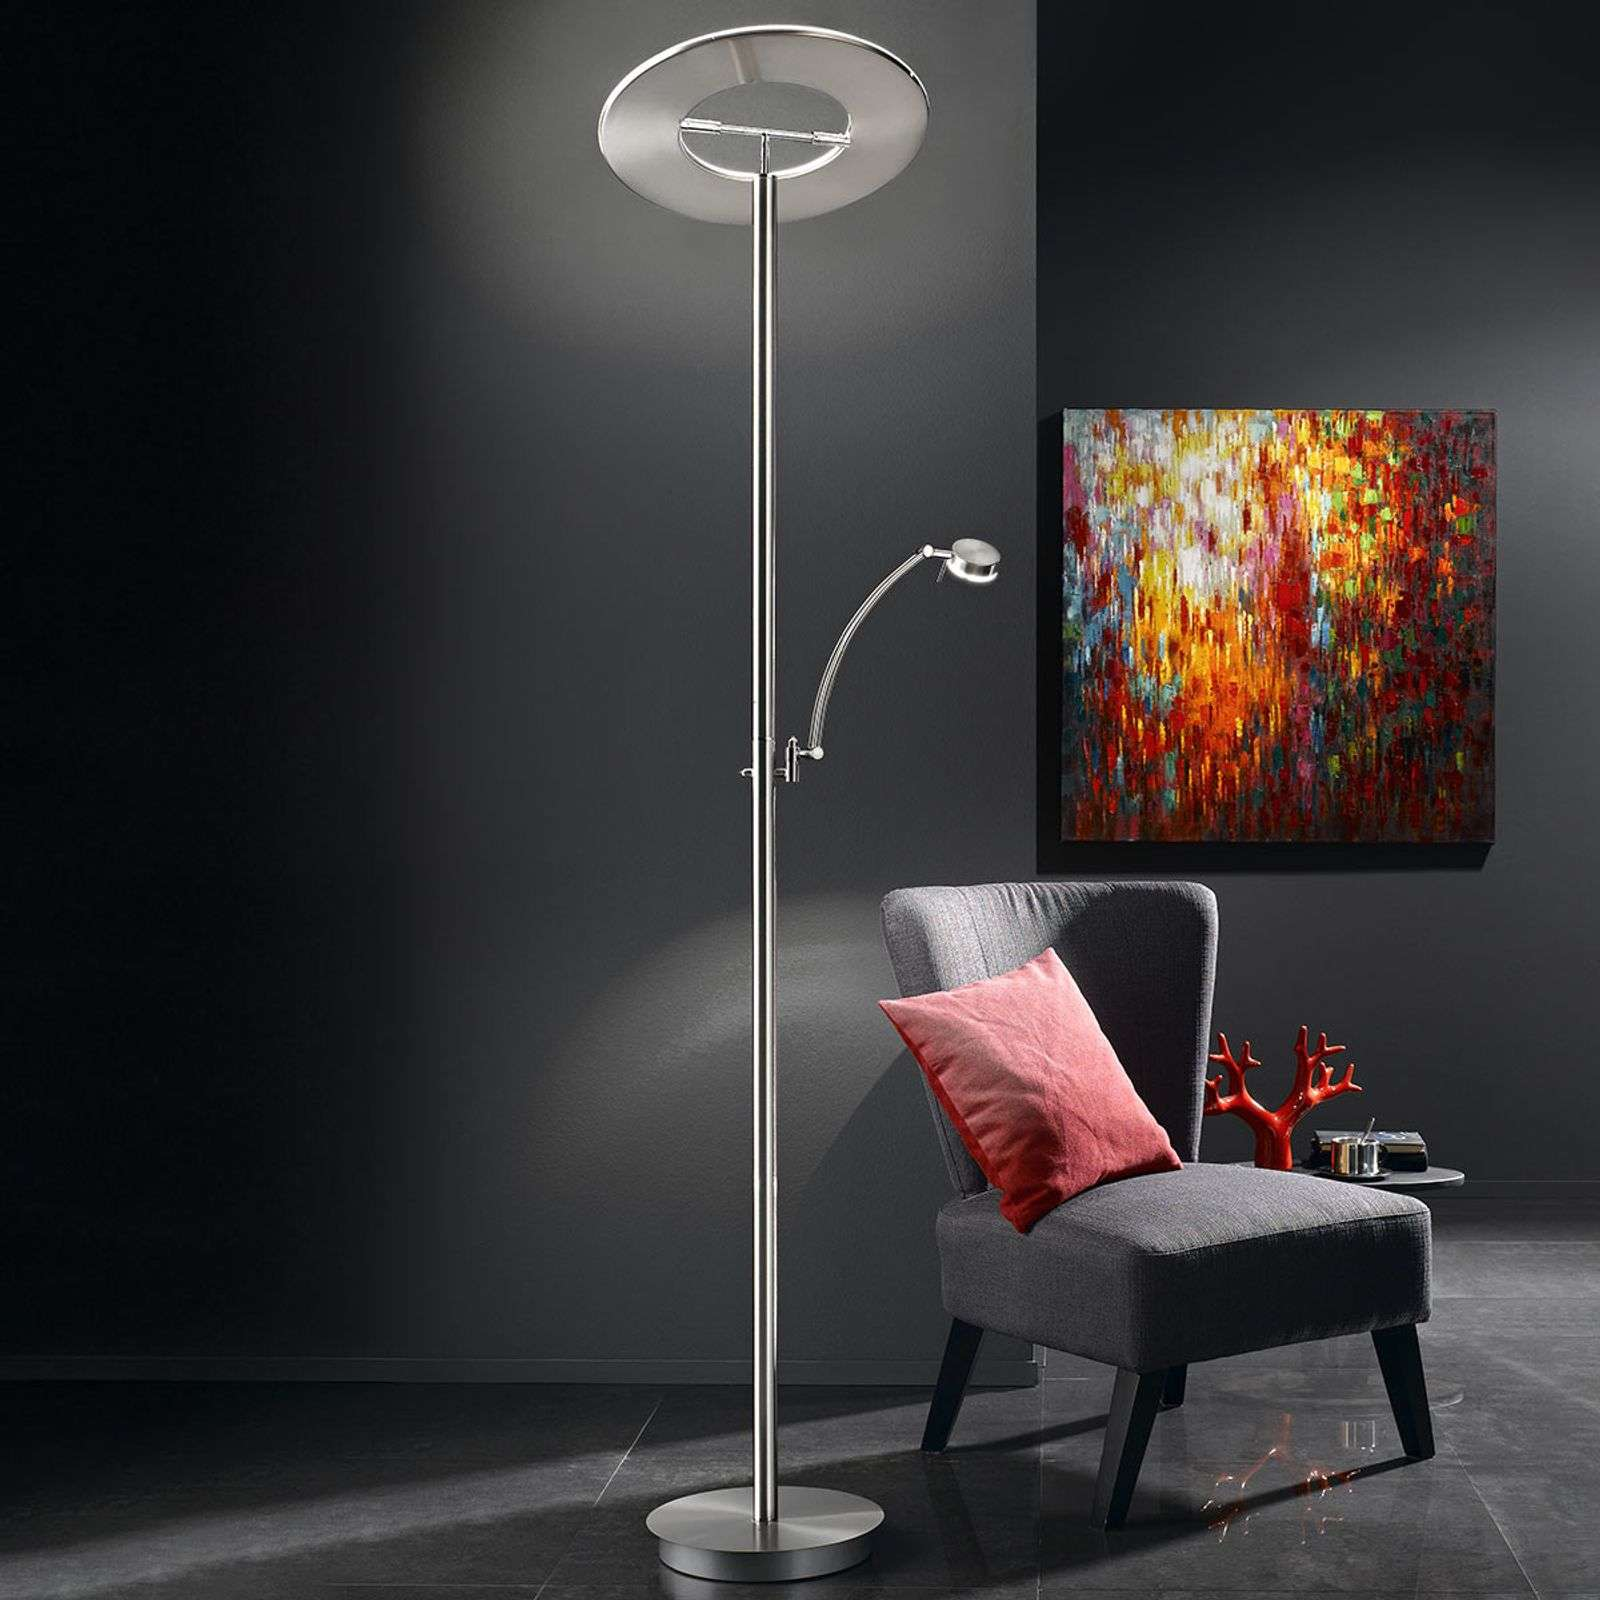 Lampadaire LED Monza, indirect, dimmable, liseuse